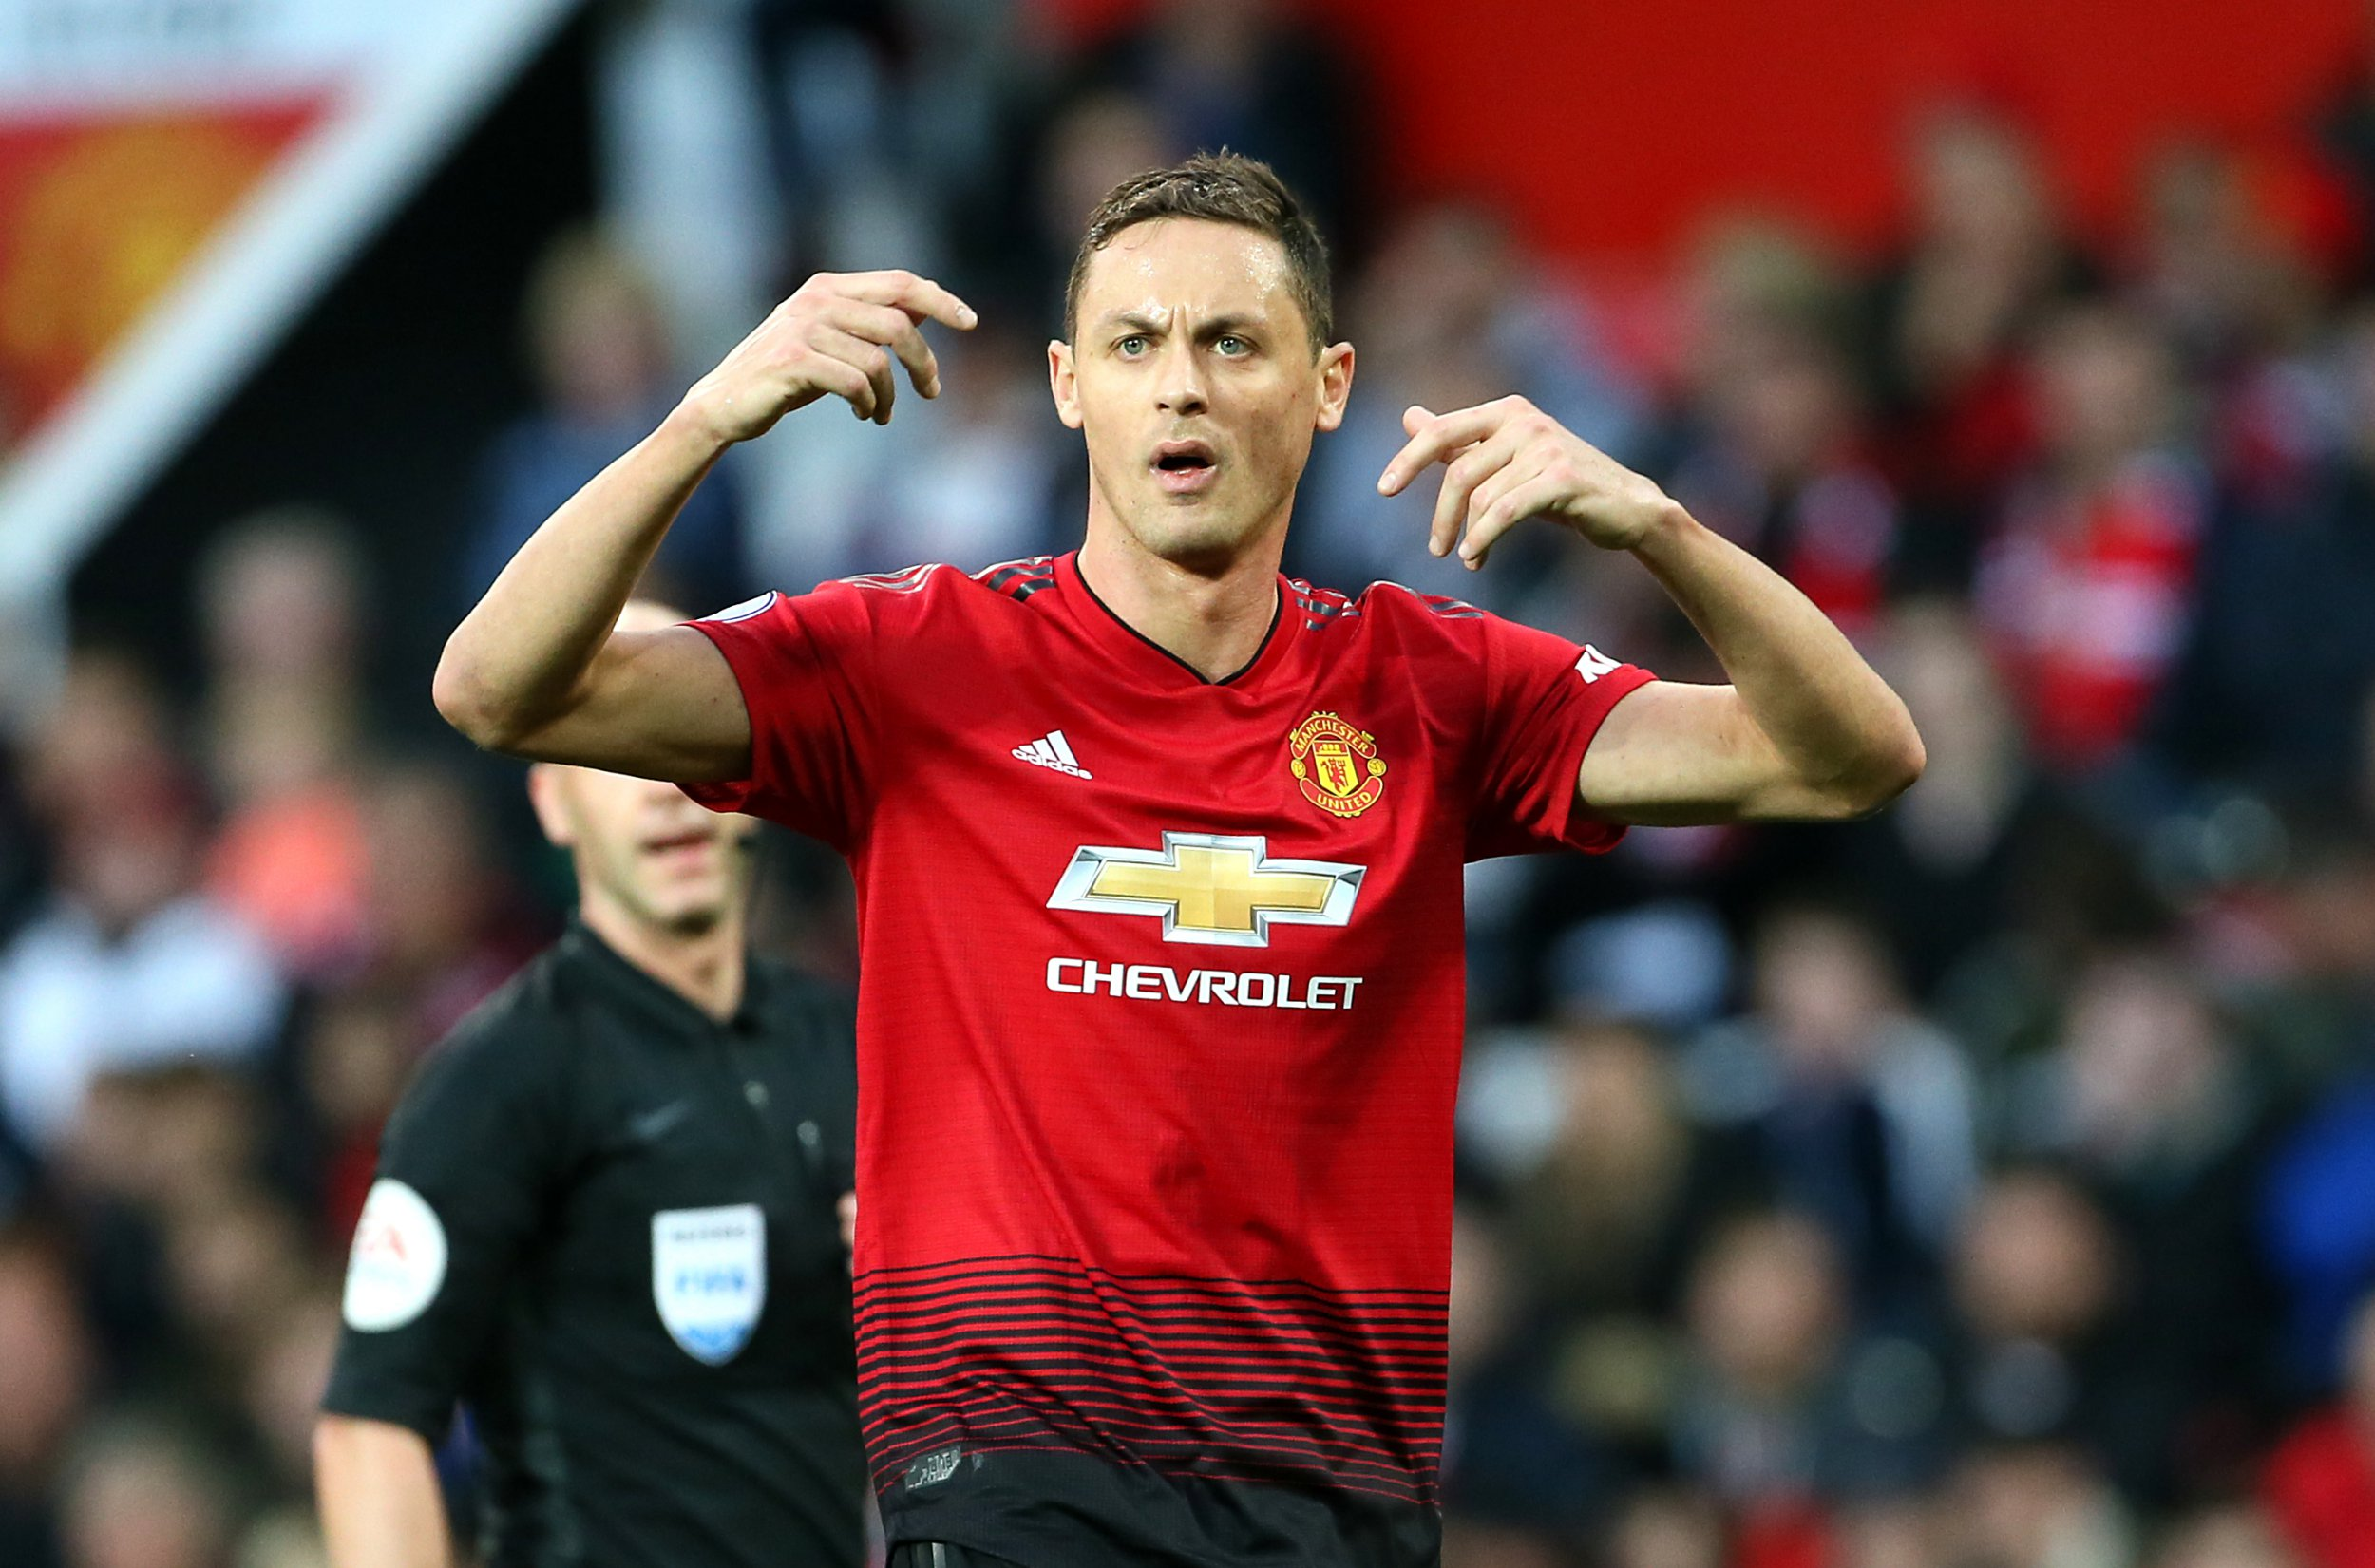 Manchester United's Nemanja Matic reacts